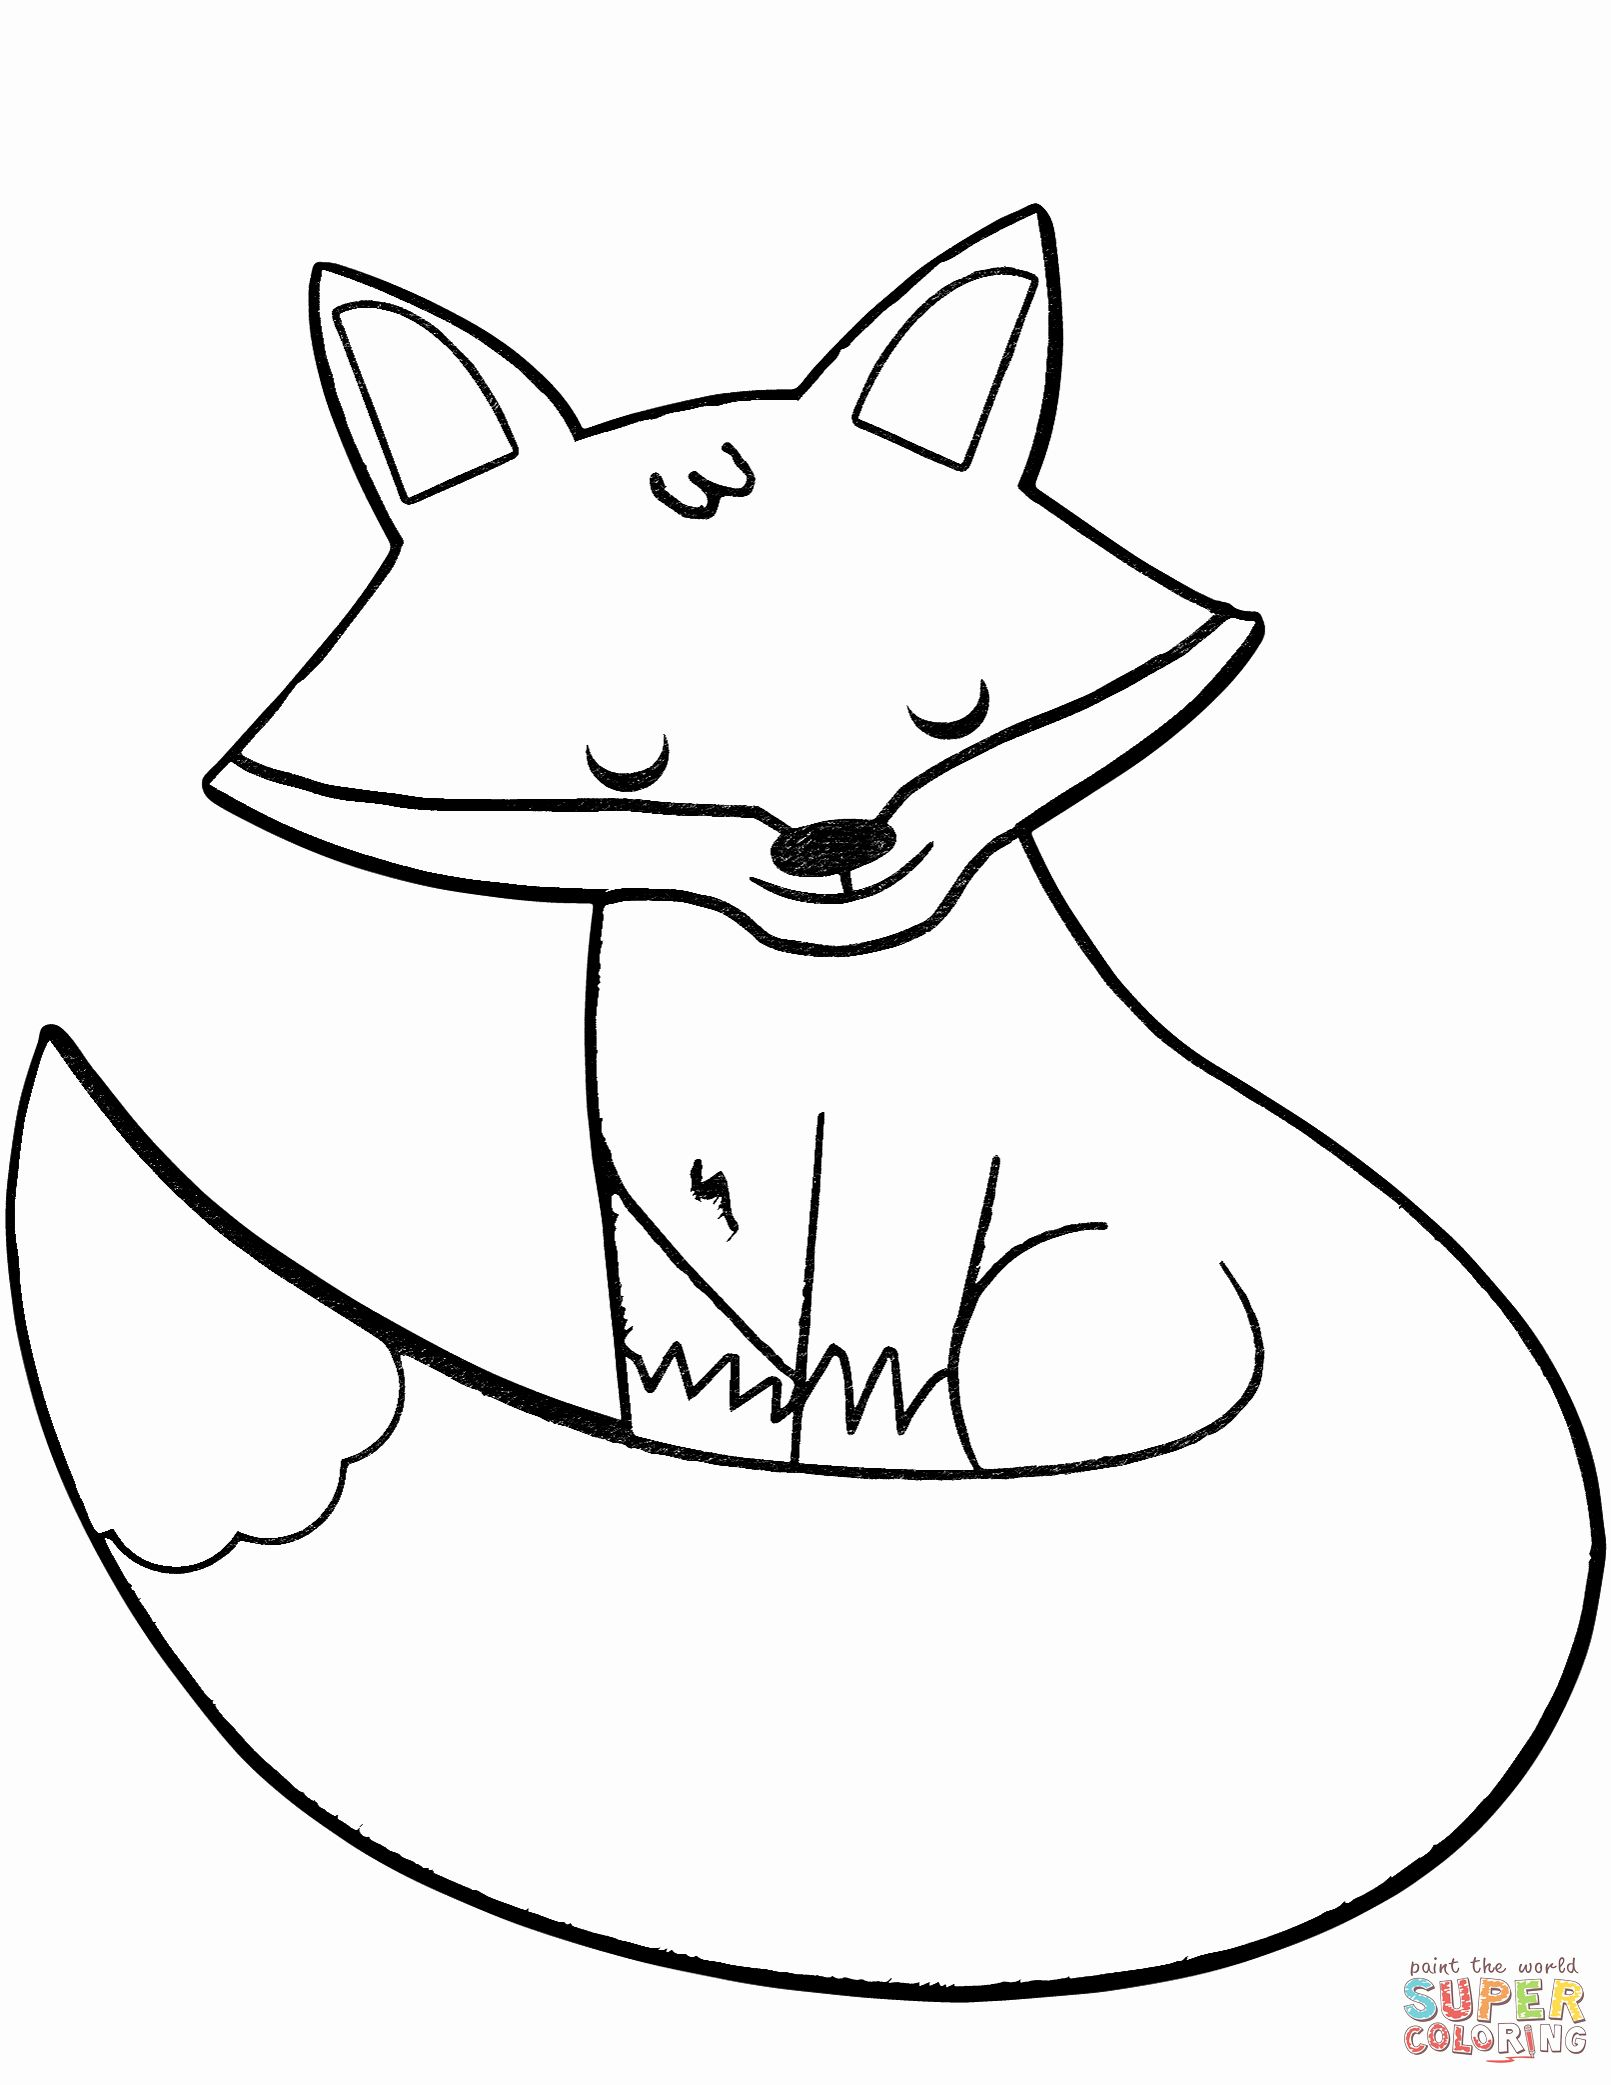 Fox Coloring Pages For Kids In 2020 Owl Coloring Pages Fox